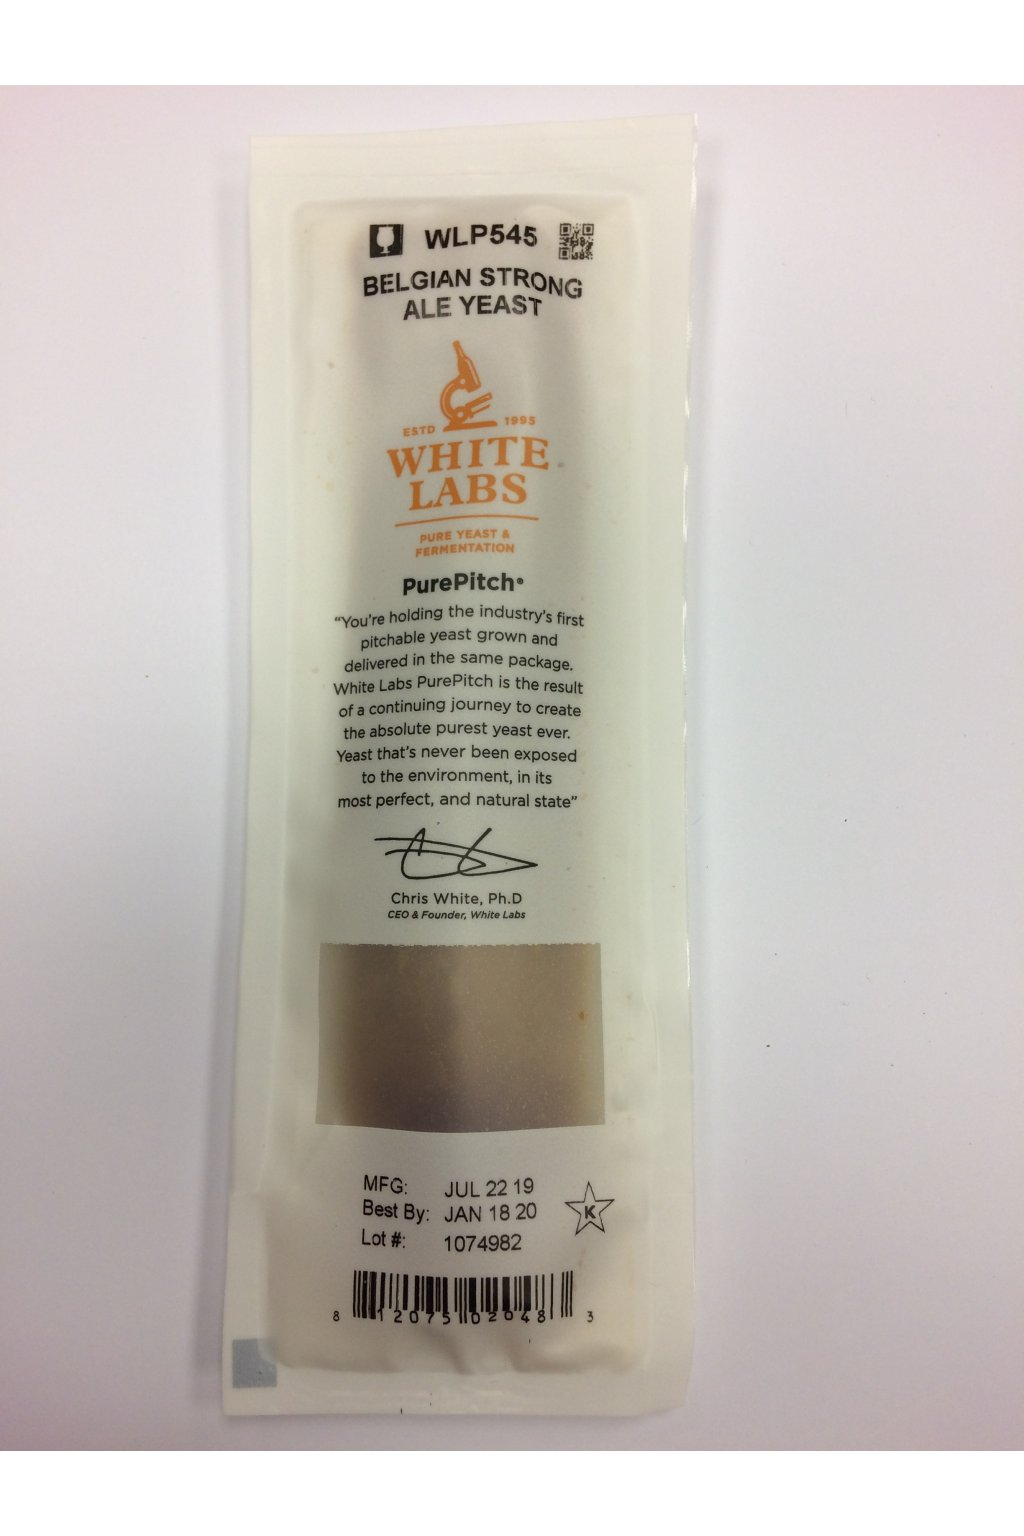 WLP545 Belgian Strong Ale Yeast